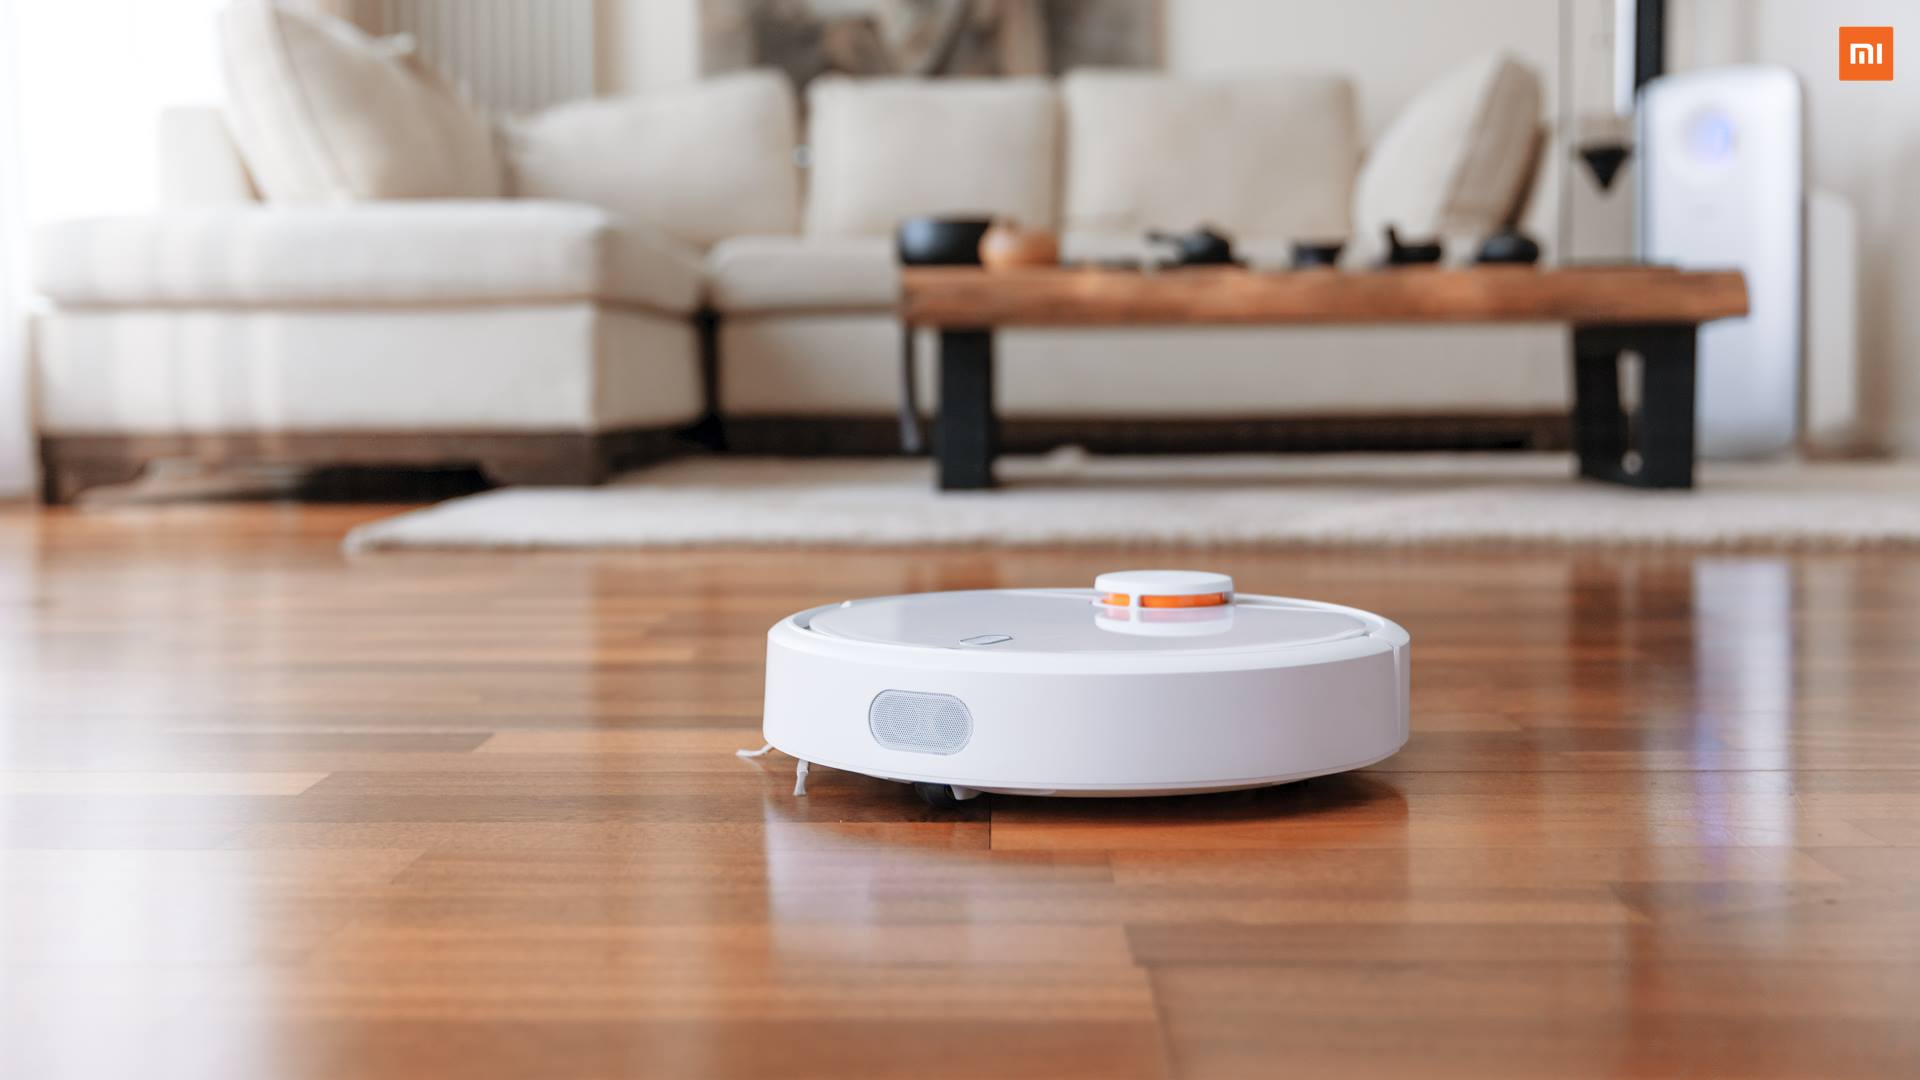 Xiaomi sucks: new Mi Robot Vacuum takes on Roomba